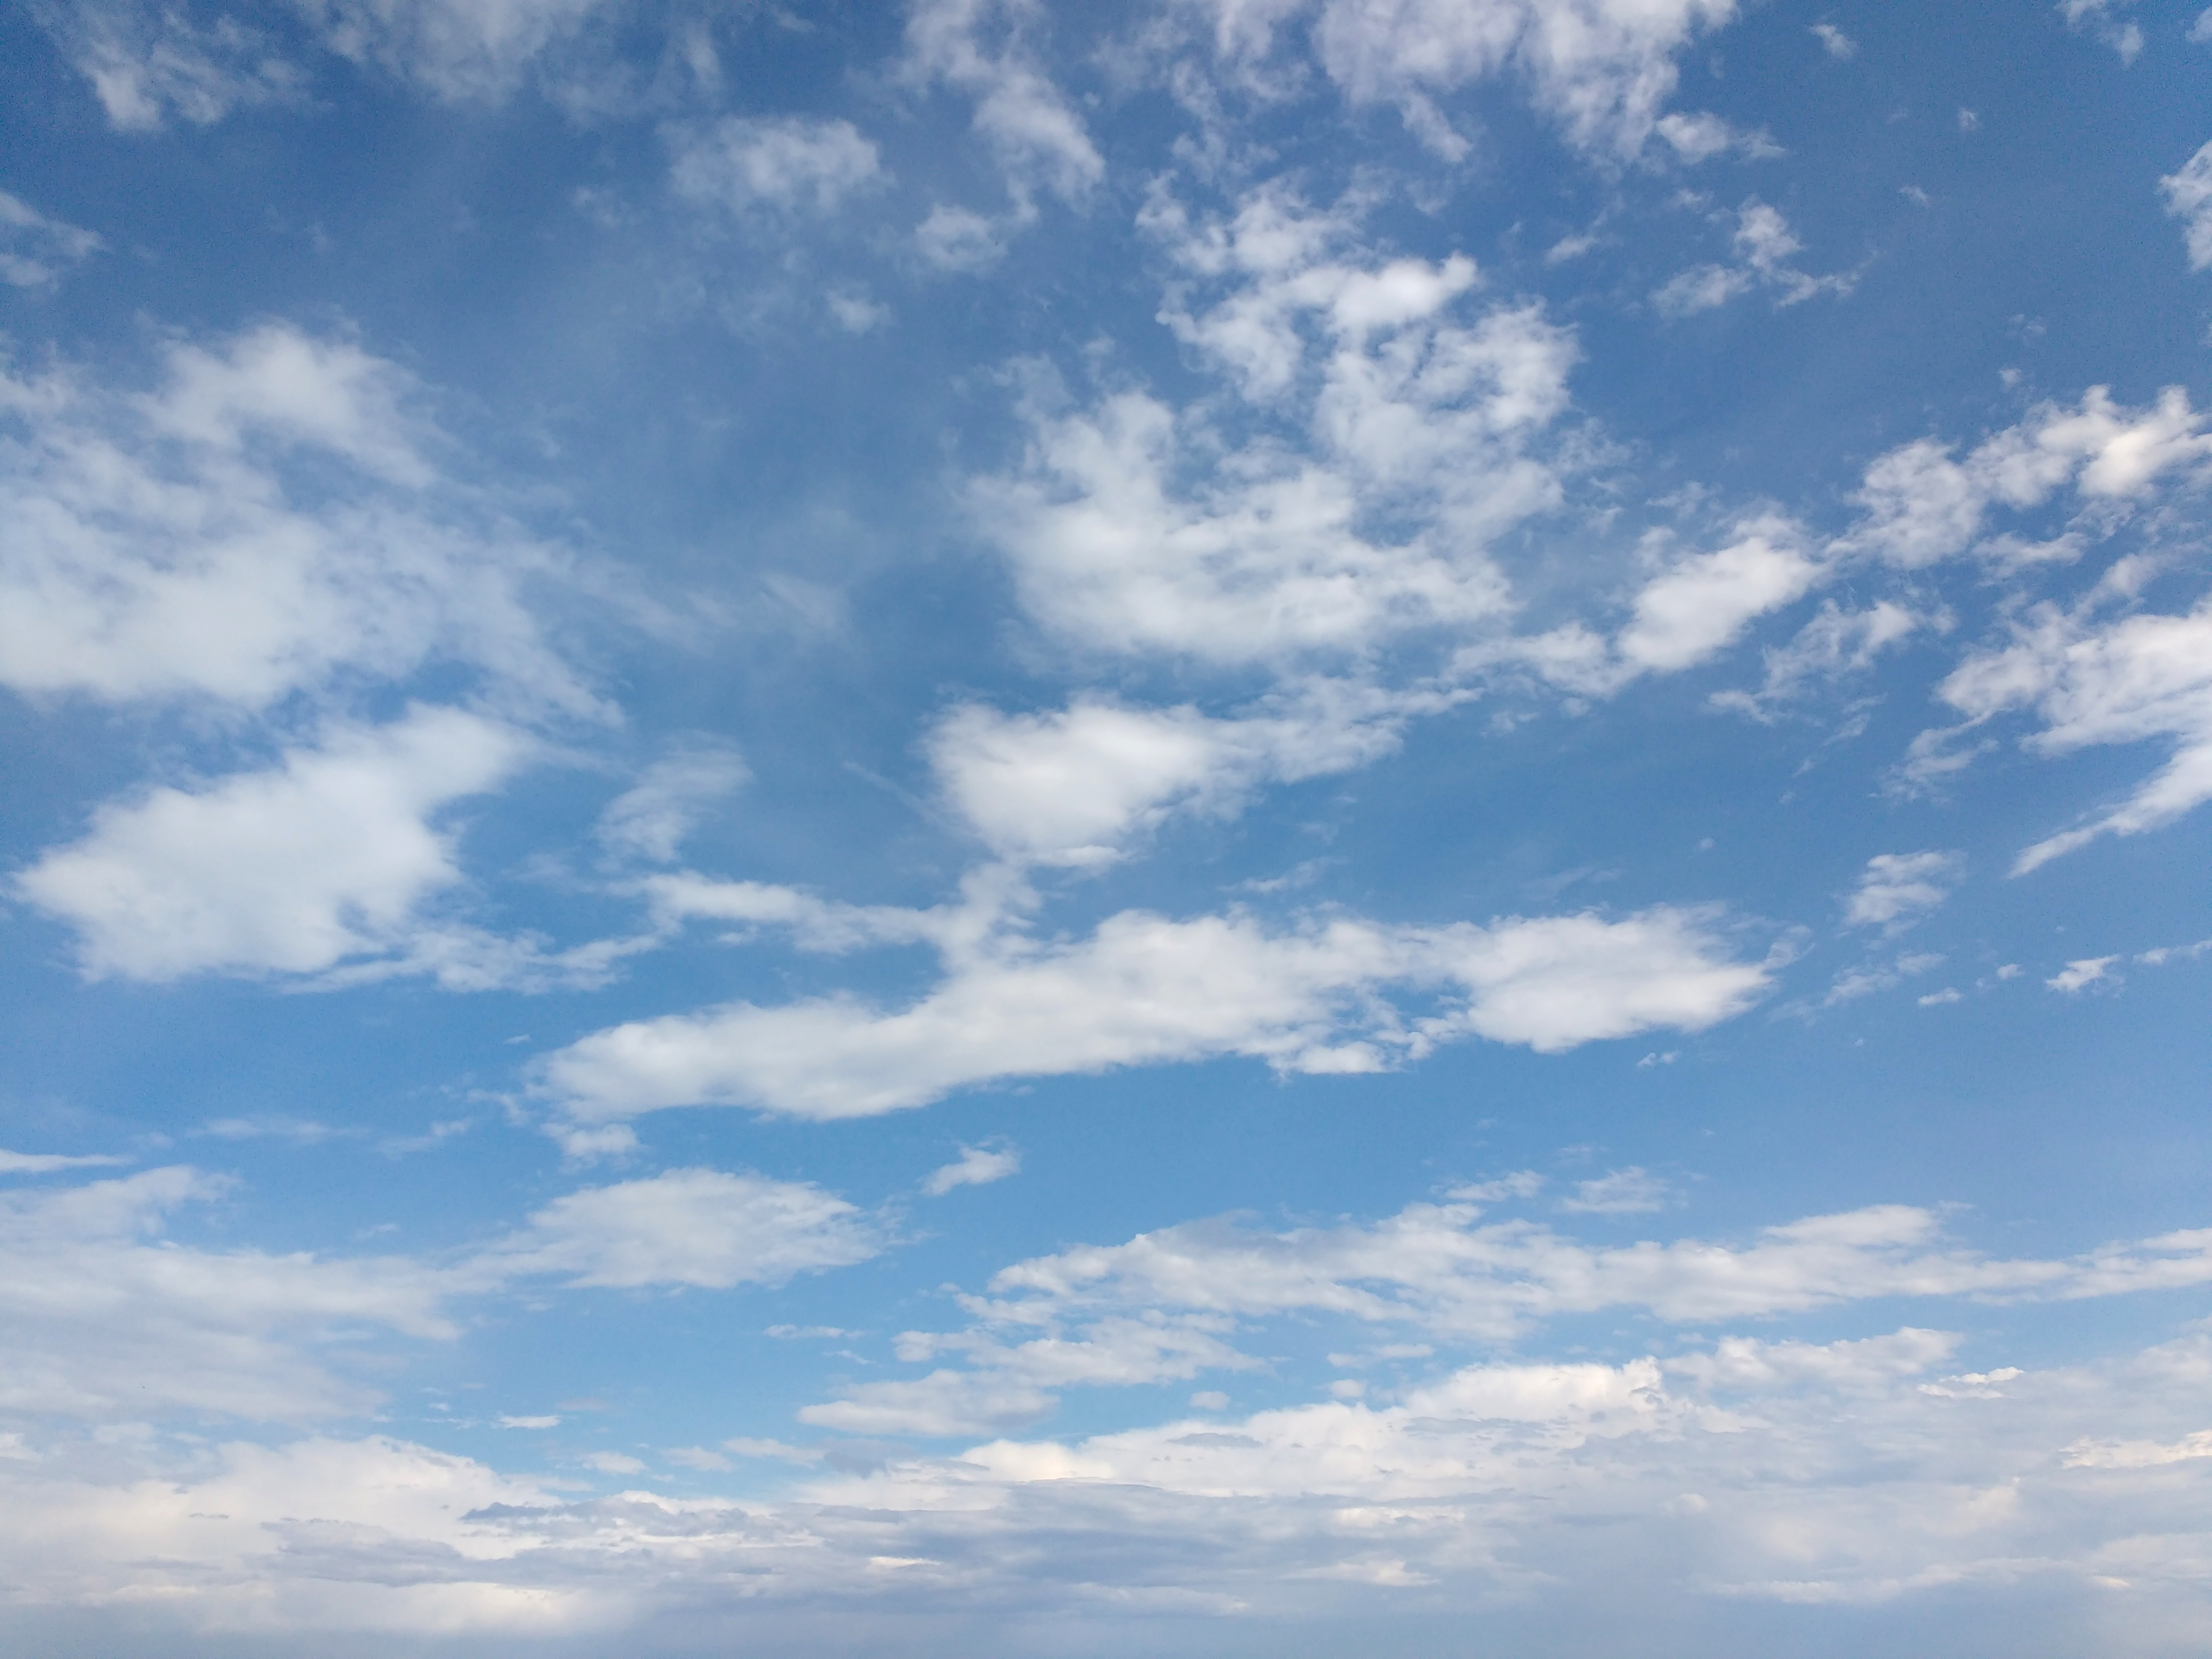 sky with clouds texture picture free photograph photos public domain